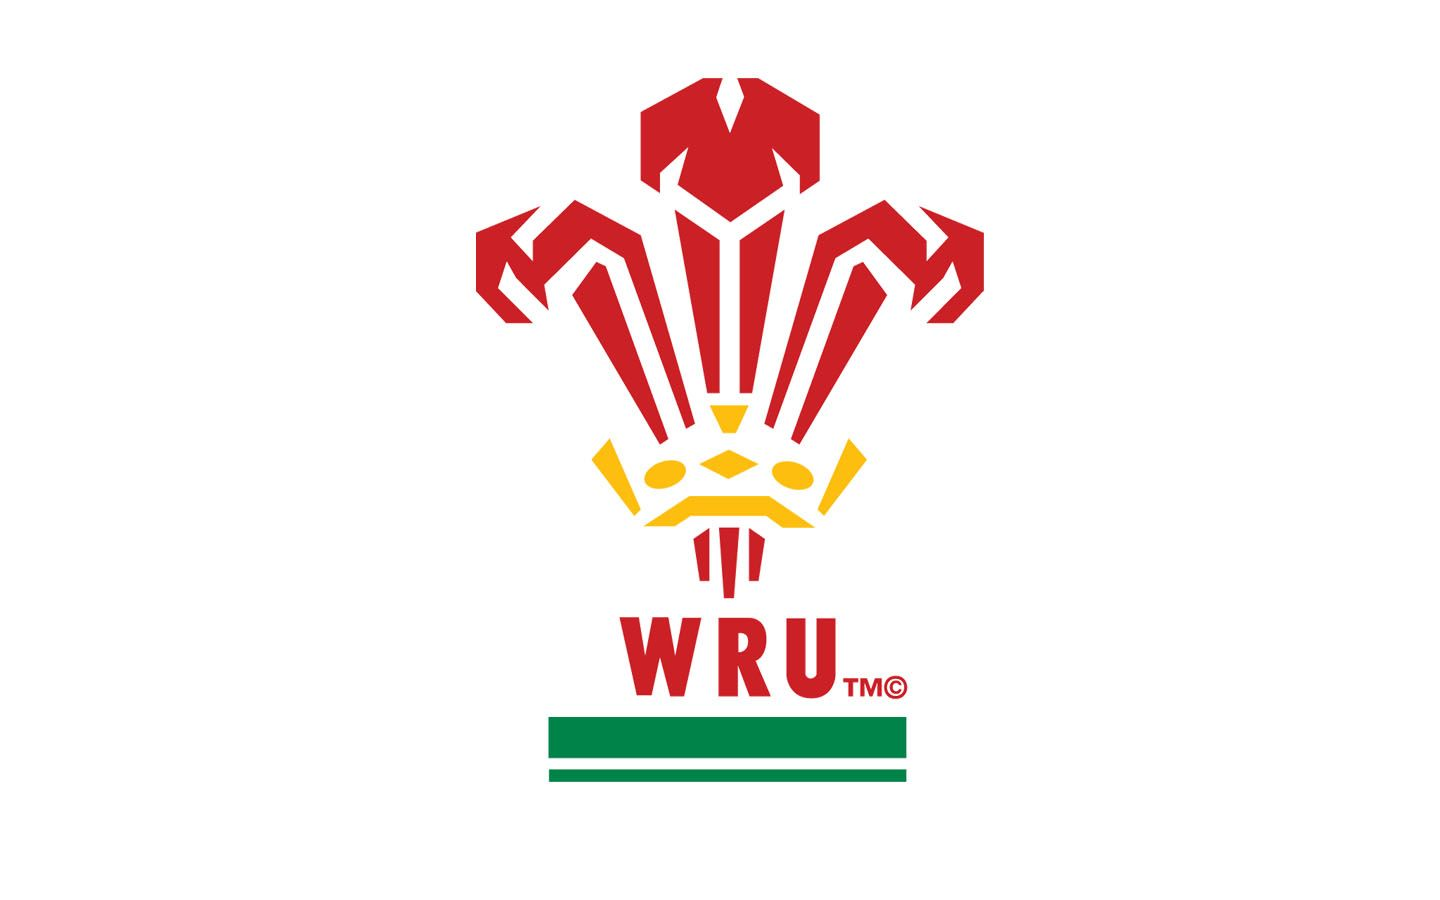 Wales Rugby Logo Wallpaper Nexus Wallpaper Wales Rugby Rugby Logo Rugby Union Teams